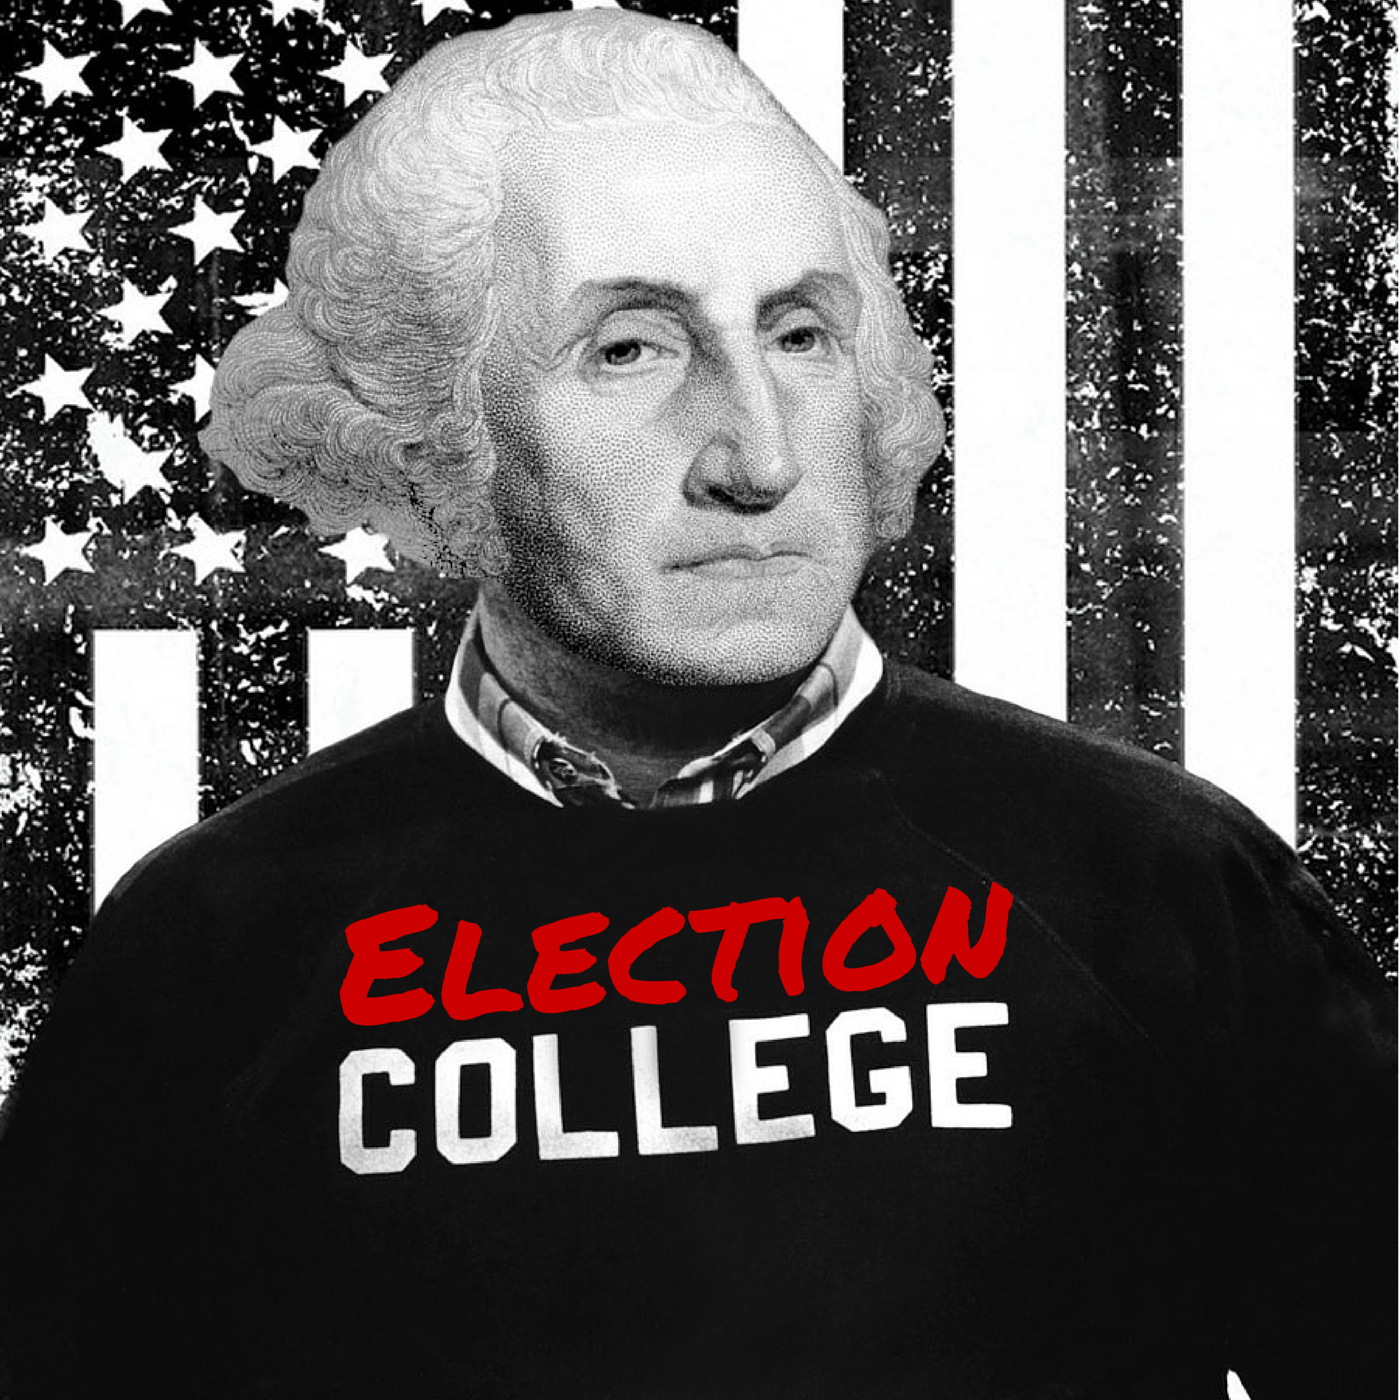 The Life of Samuel Adams - Part 2 | Episode #172 | Election College: United States Presidential Election History